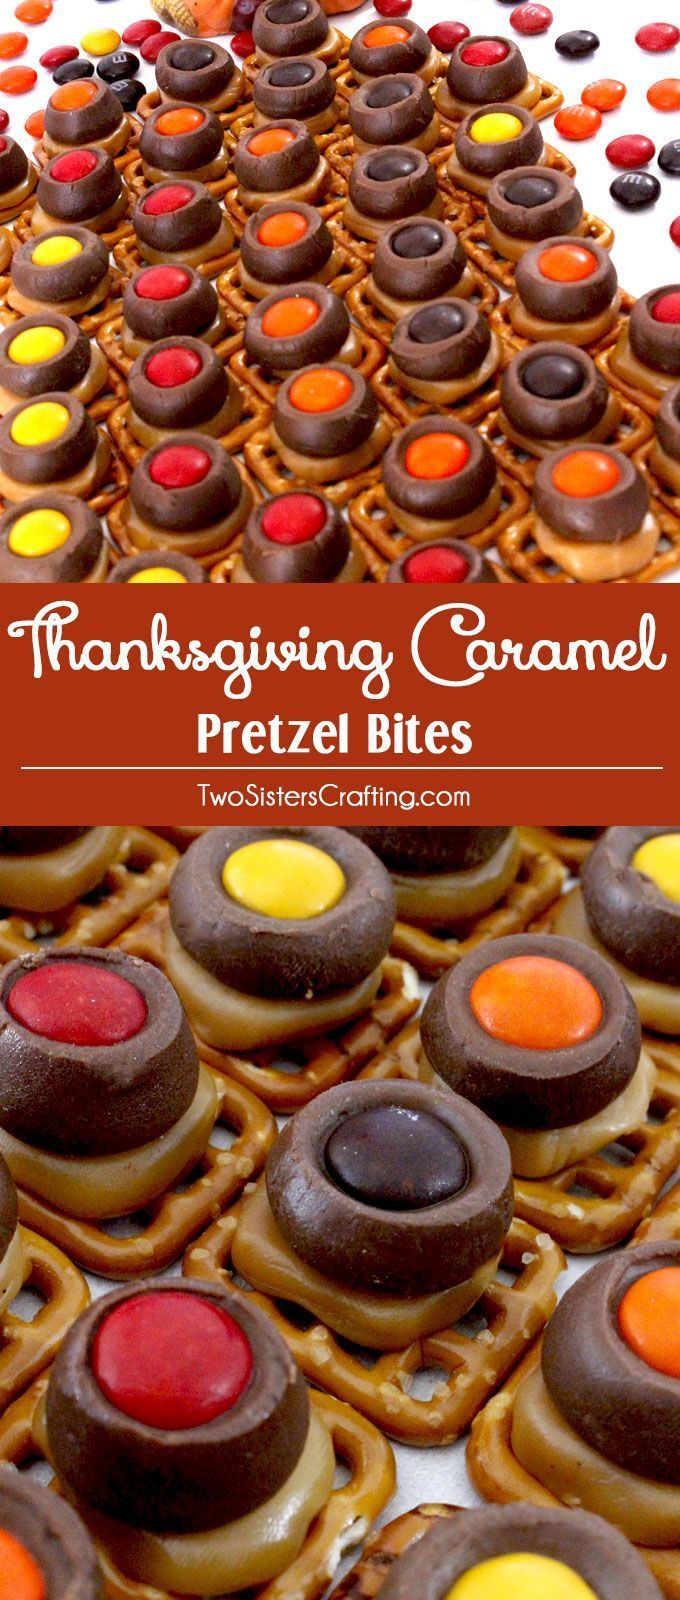 Thanksgiving Caramel Pretzel Bites #thanksgivingfood